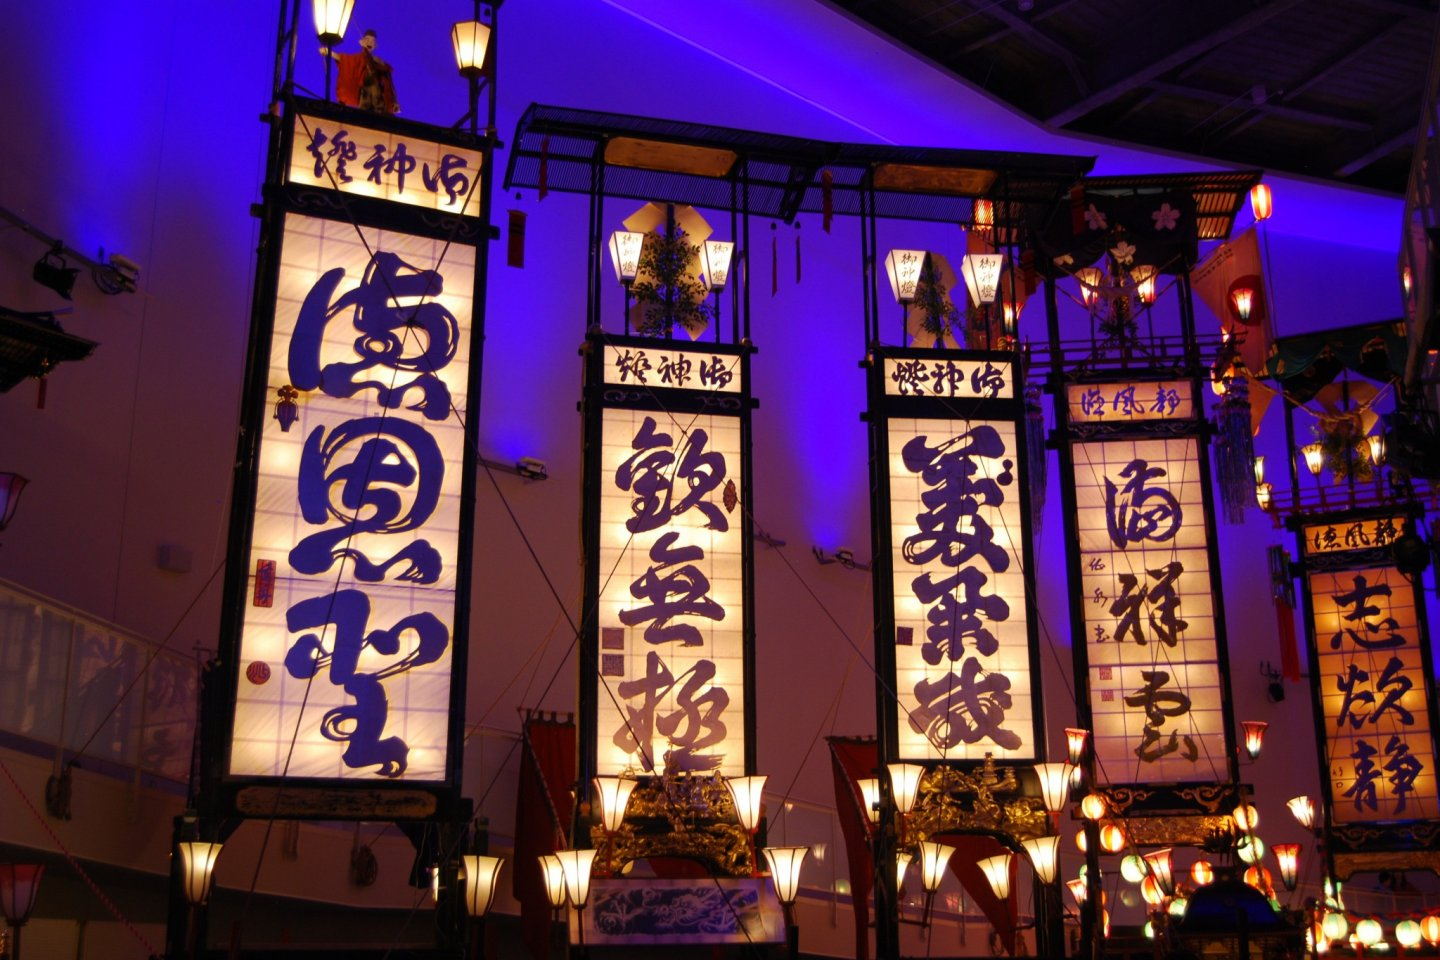 Kiriko are illuminated from the inside and they are decorated with large Kanji characters or with paintings.